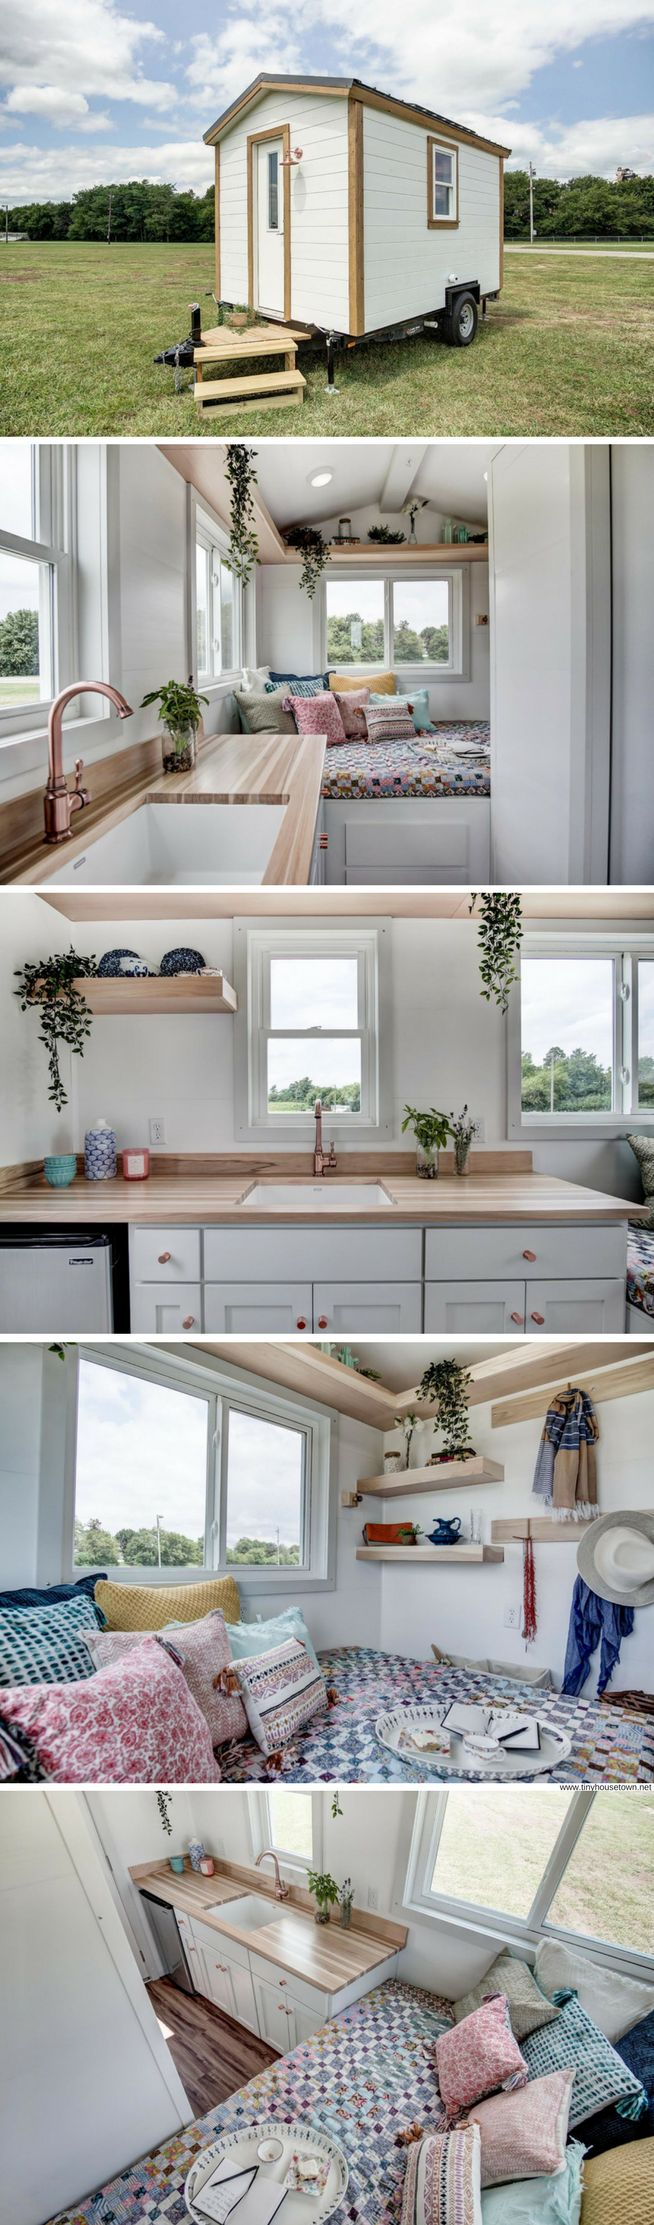 The Nugget: a micro tiny house with 102 sq ft of space!